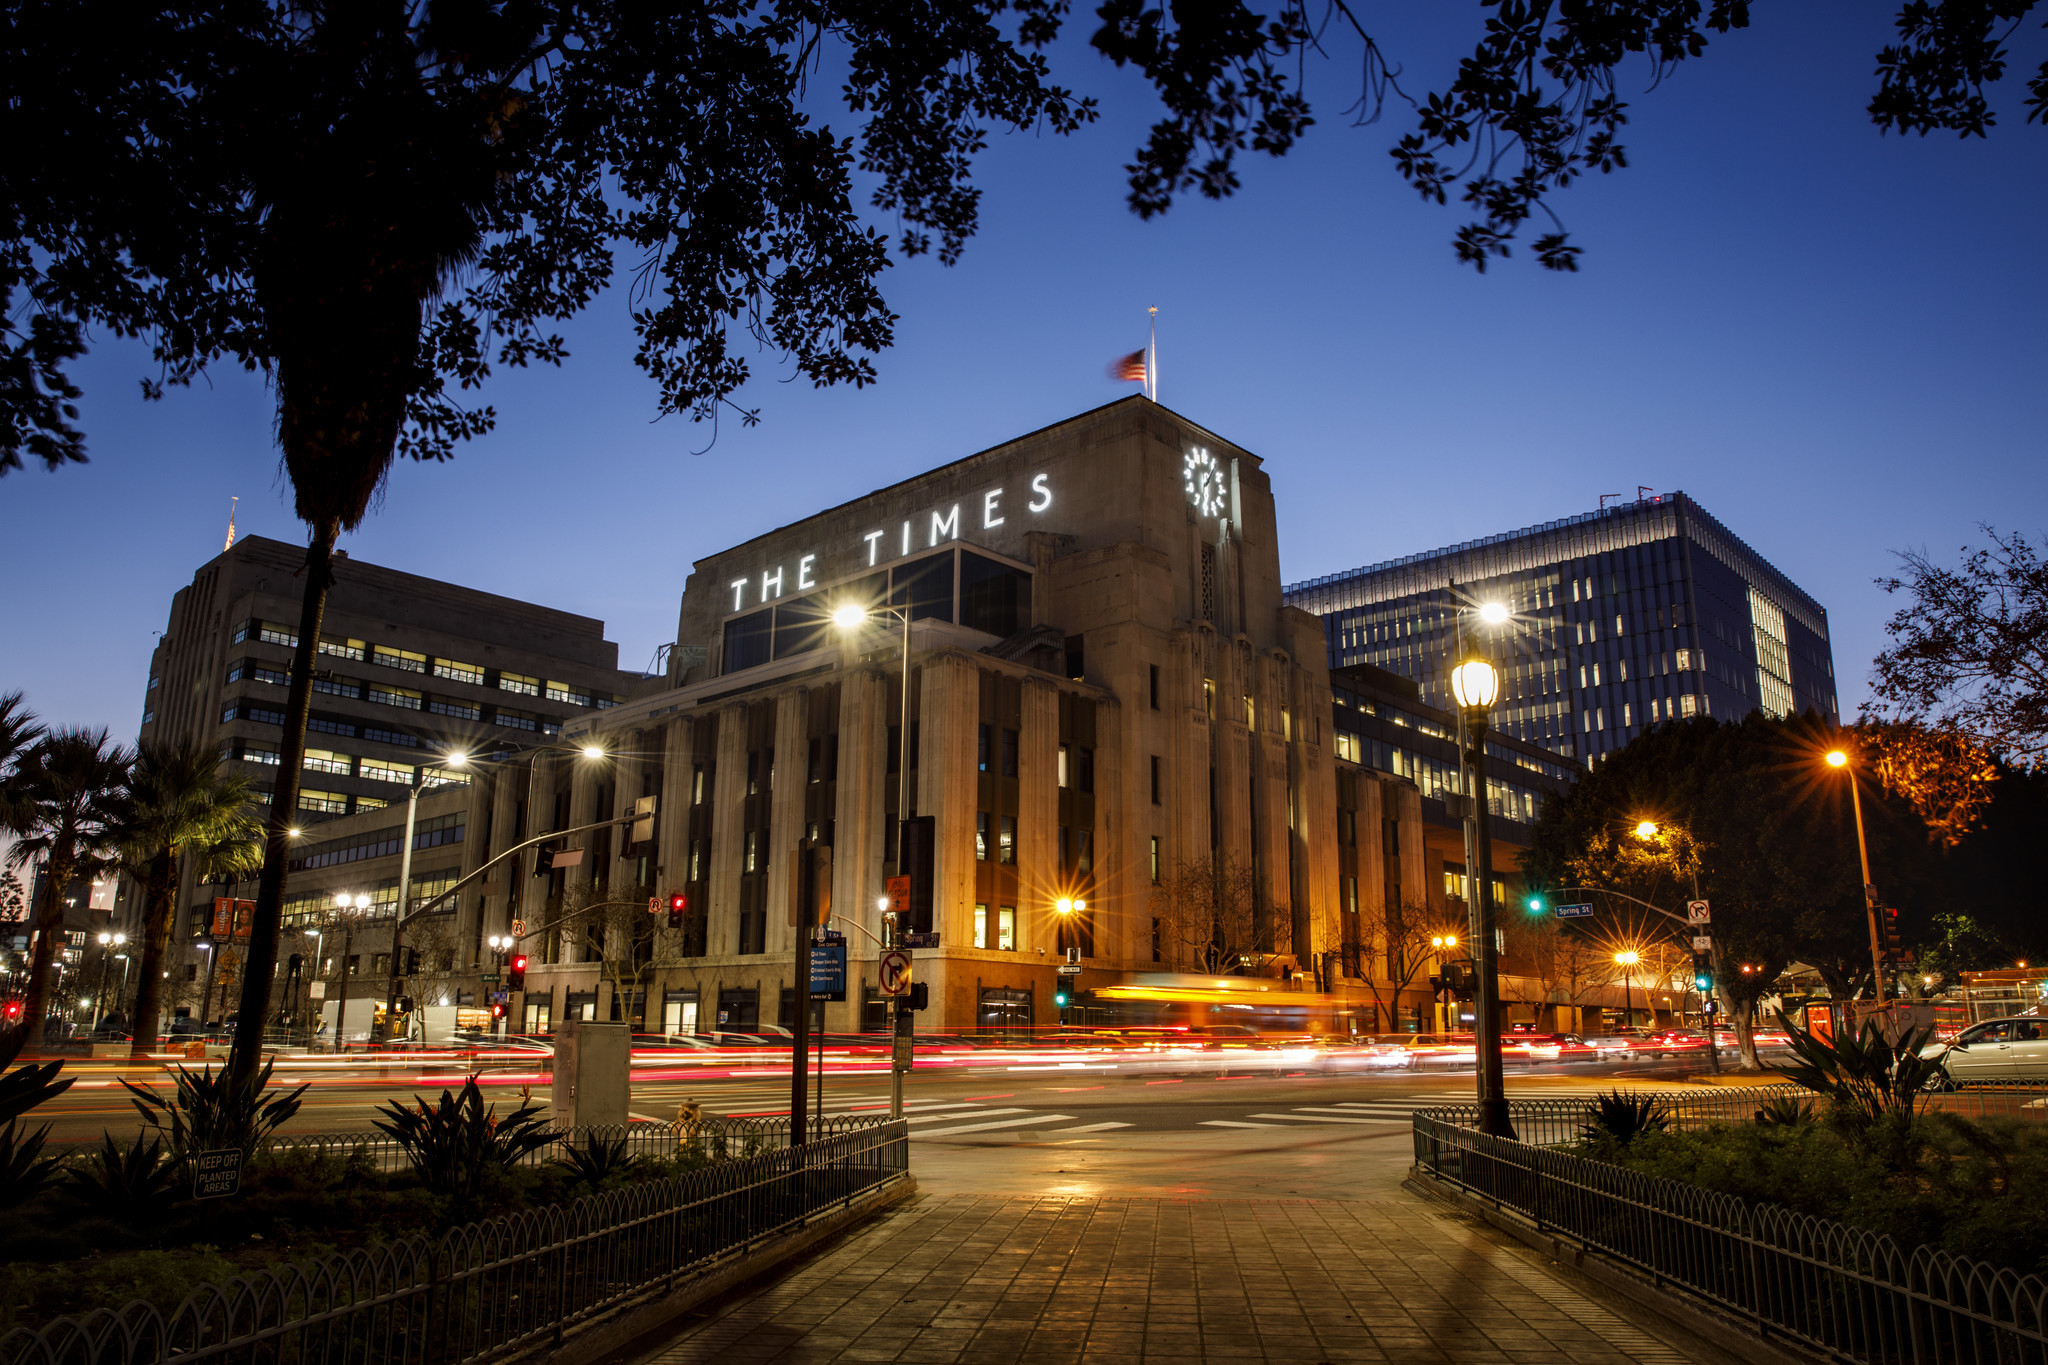 The Los Angeles Times building